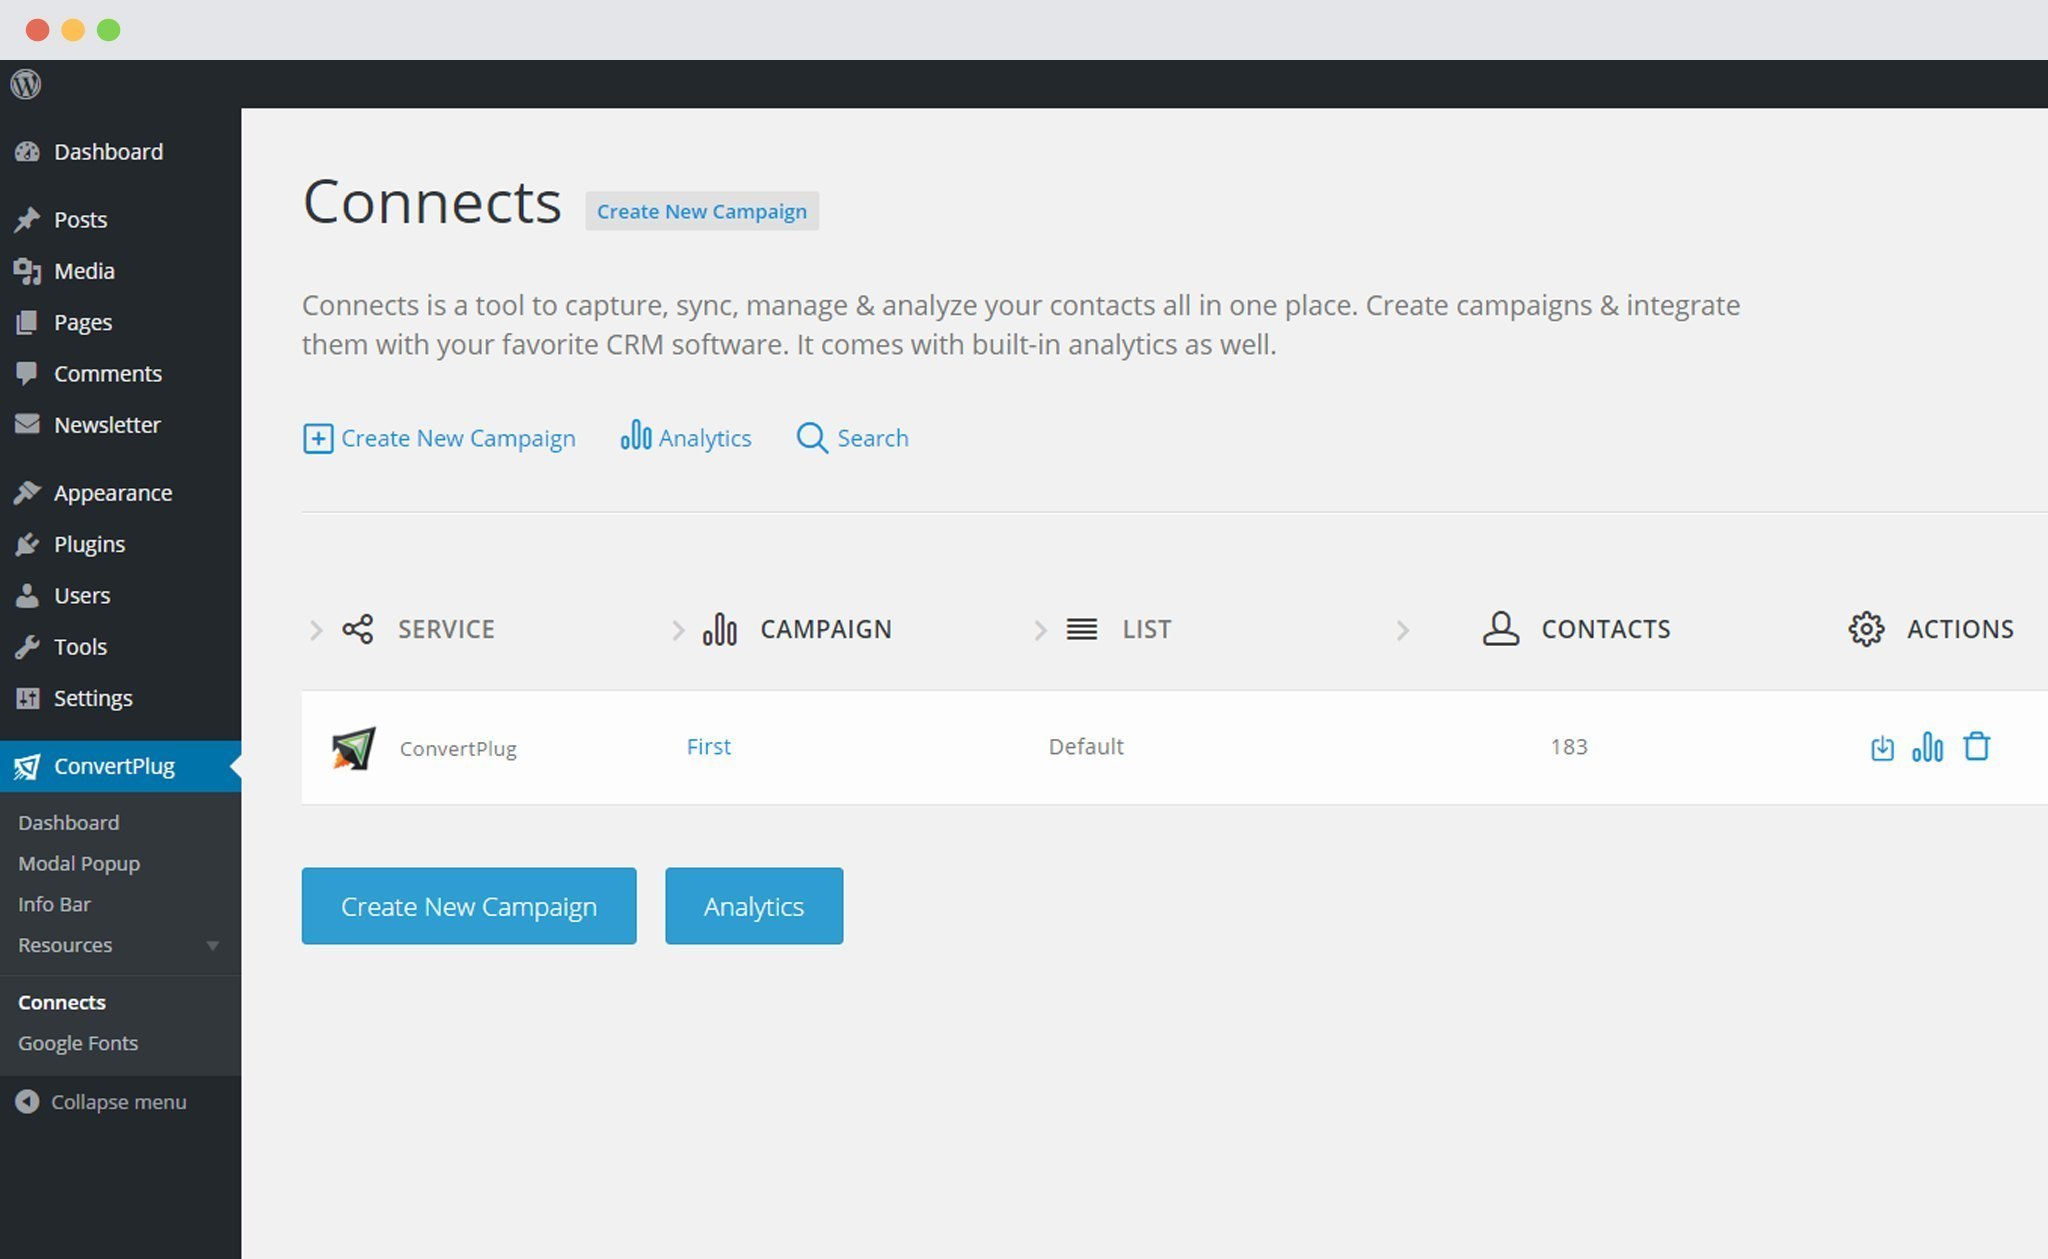 Connects page in ConvertPlus